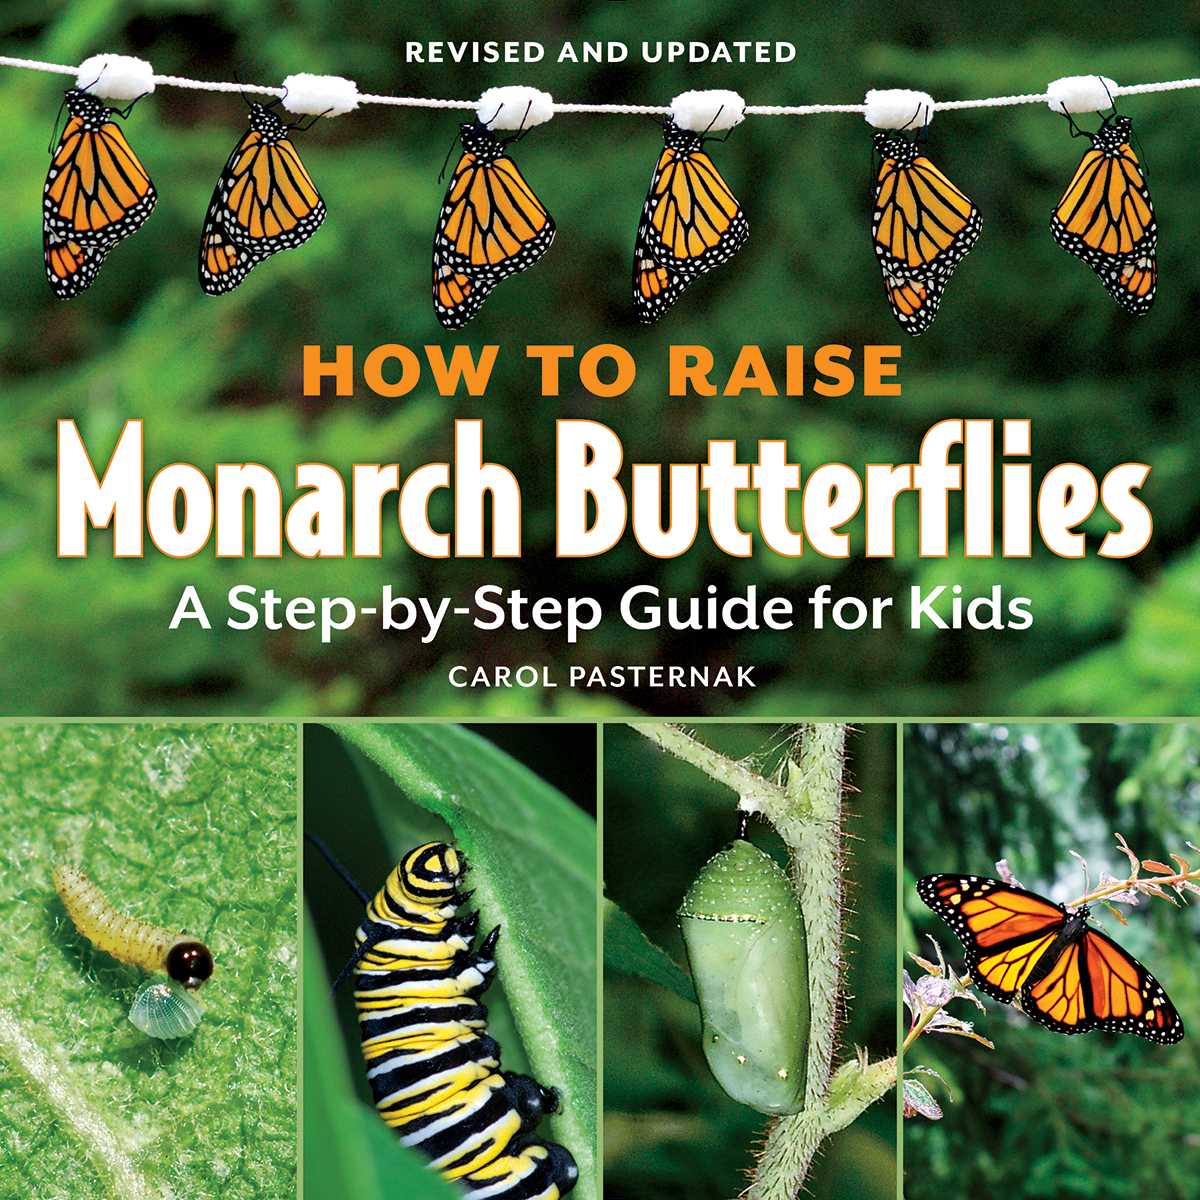 How to Raise Monarch Butterflies: <br>A Step-by-Step Guide for Kids monarch butterfly book, book about monarch butterflies, teacher%27s guide to monarch butterflies, monarch butterfly lessons, classroom monarch butterflies